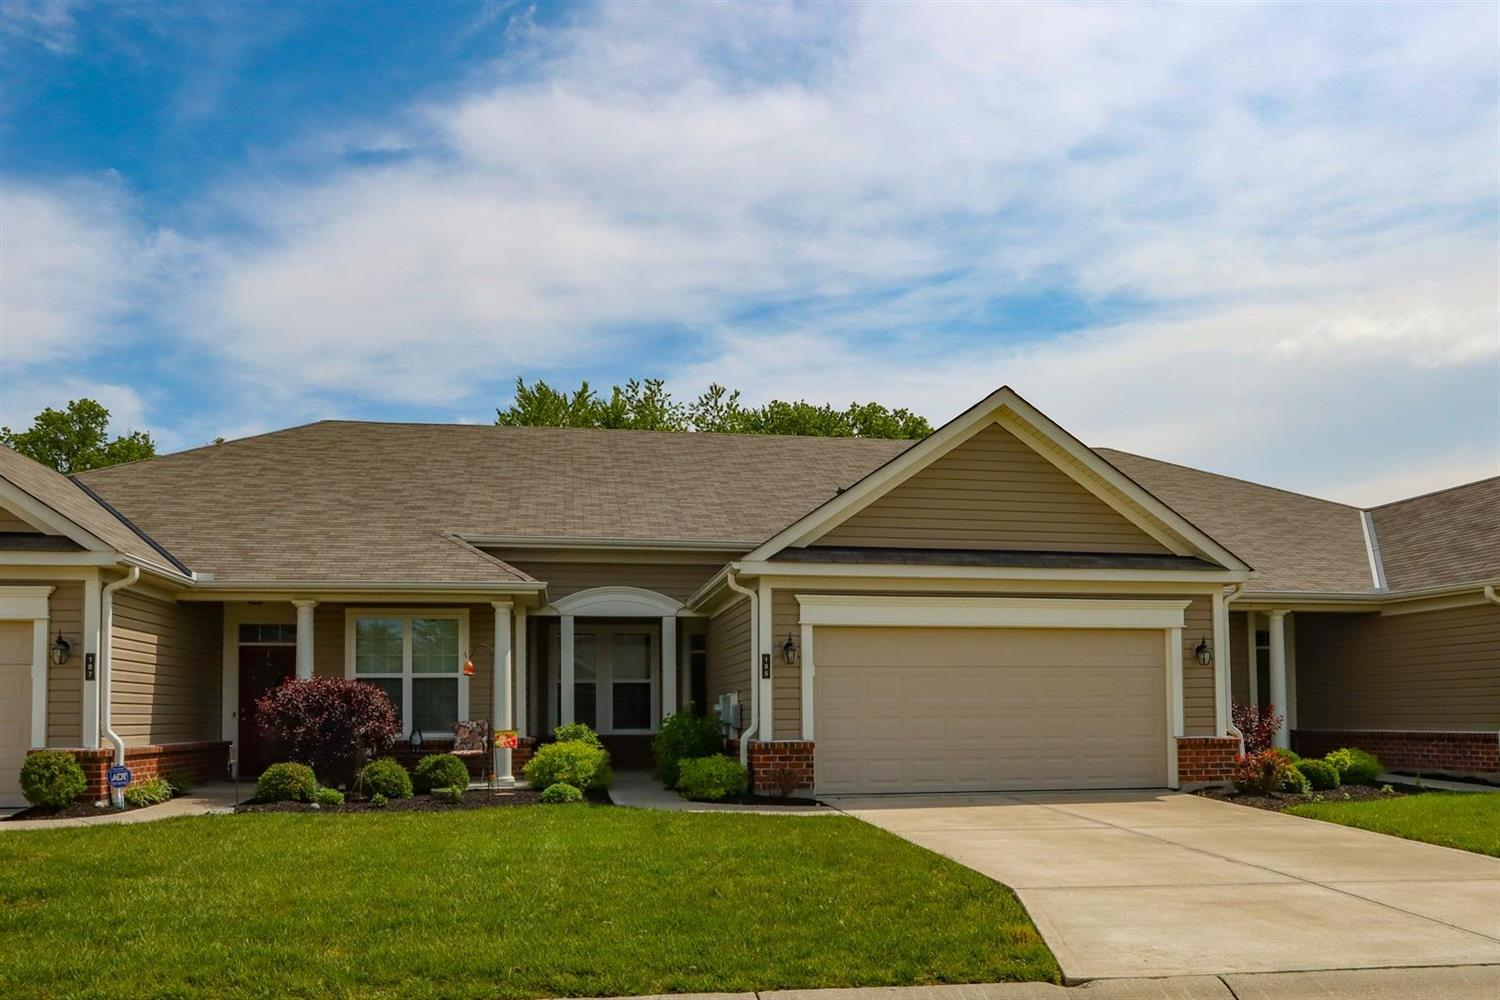 Property for sale at 185 Woodside Park Drive, Amelia,  Ohio 45102